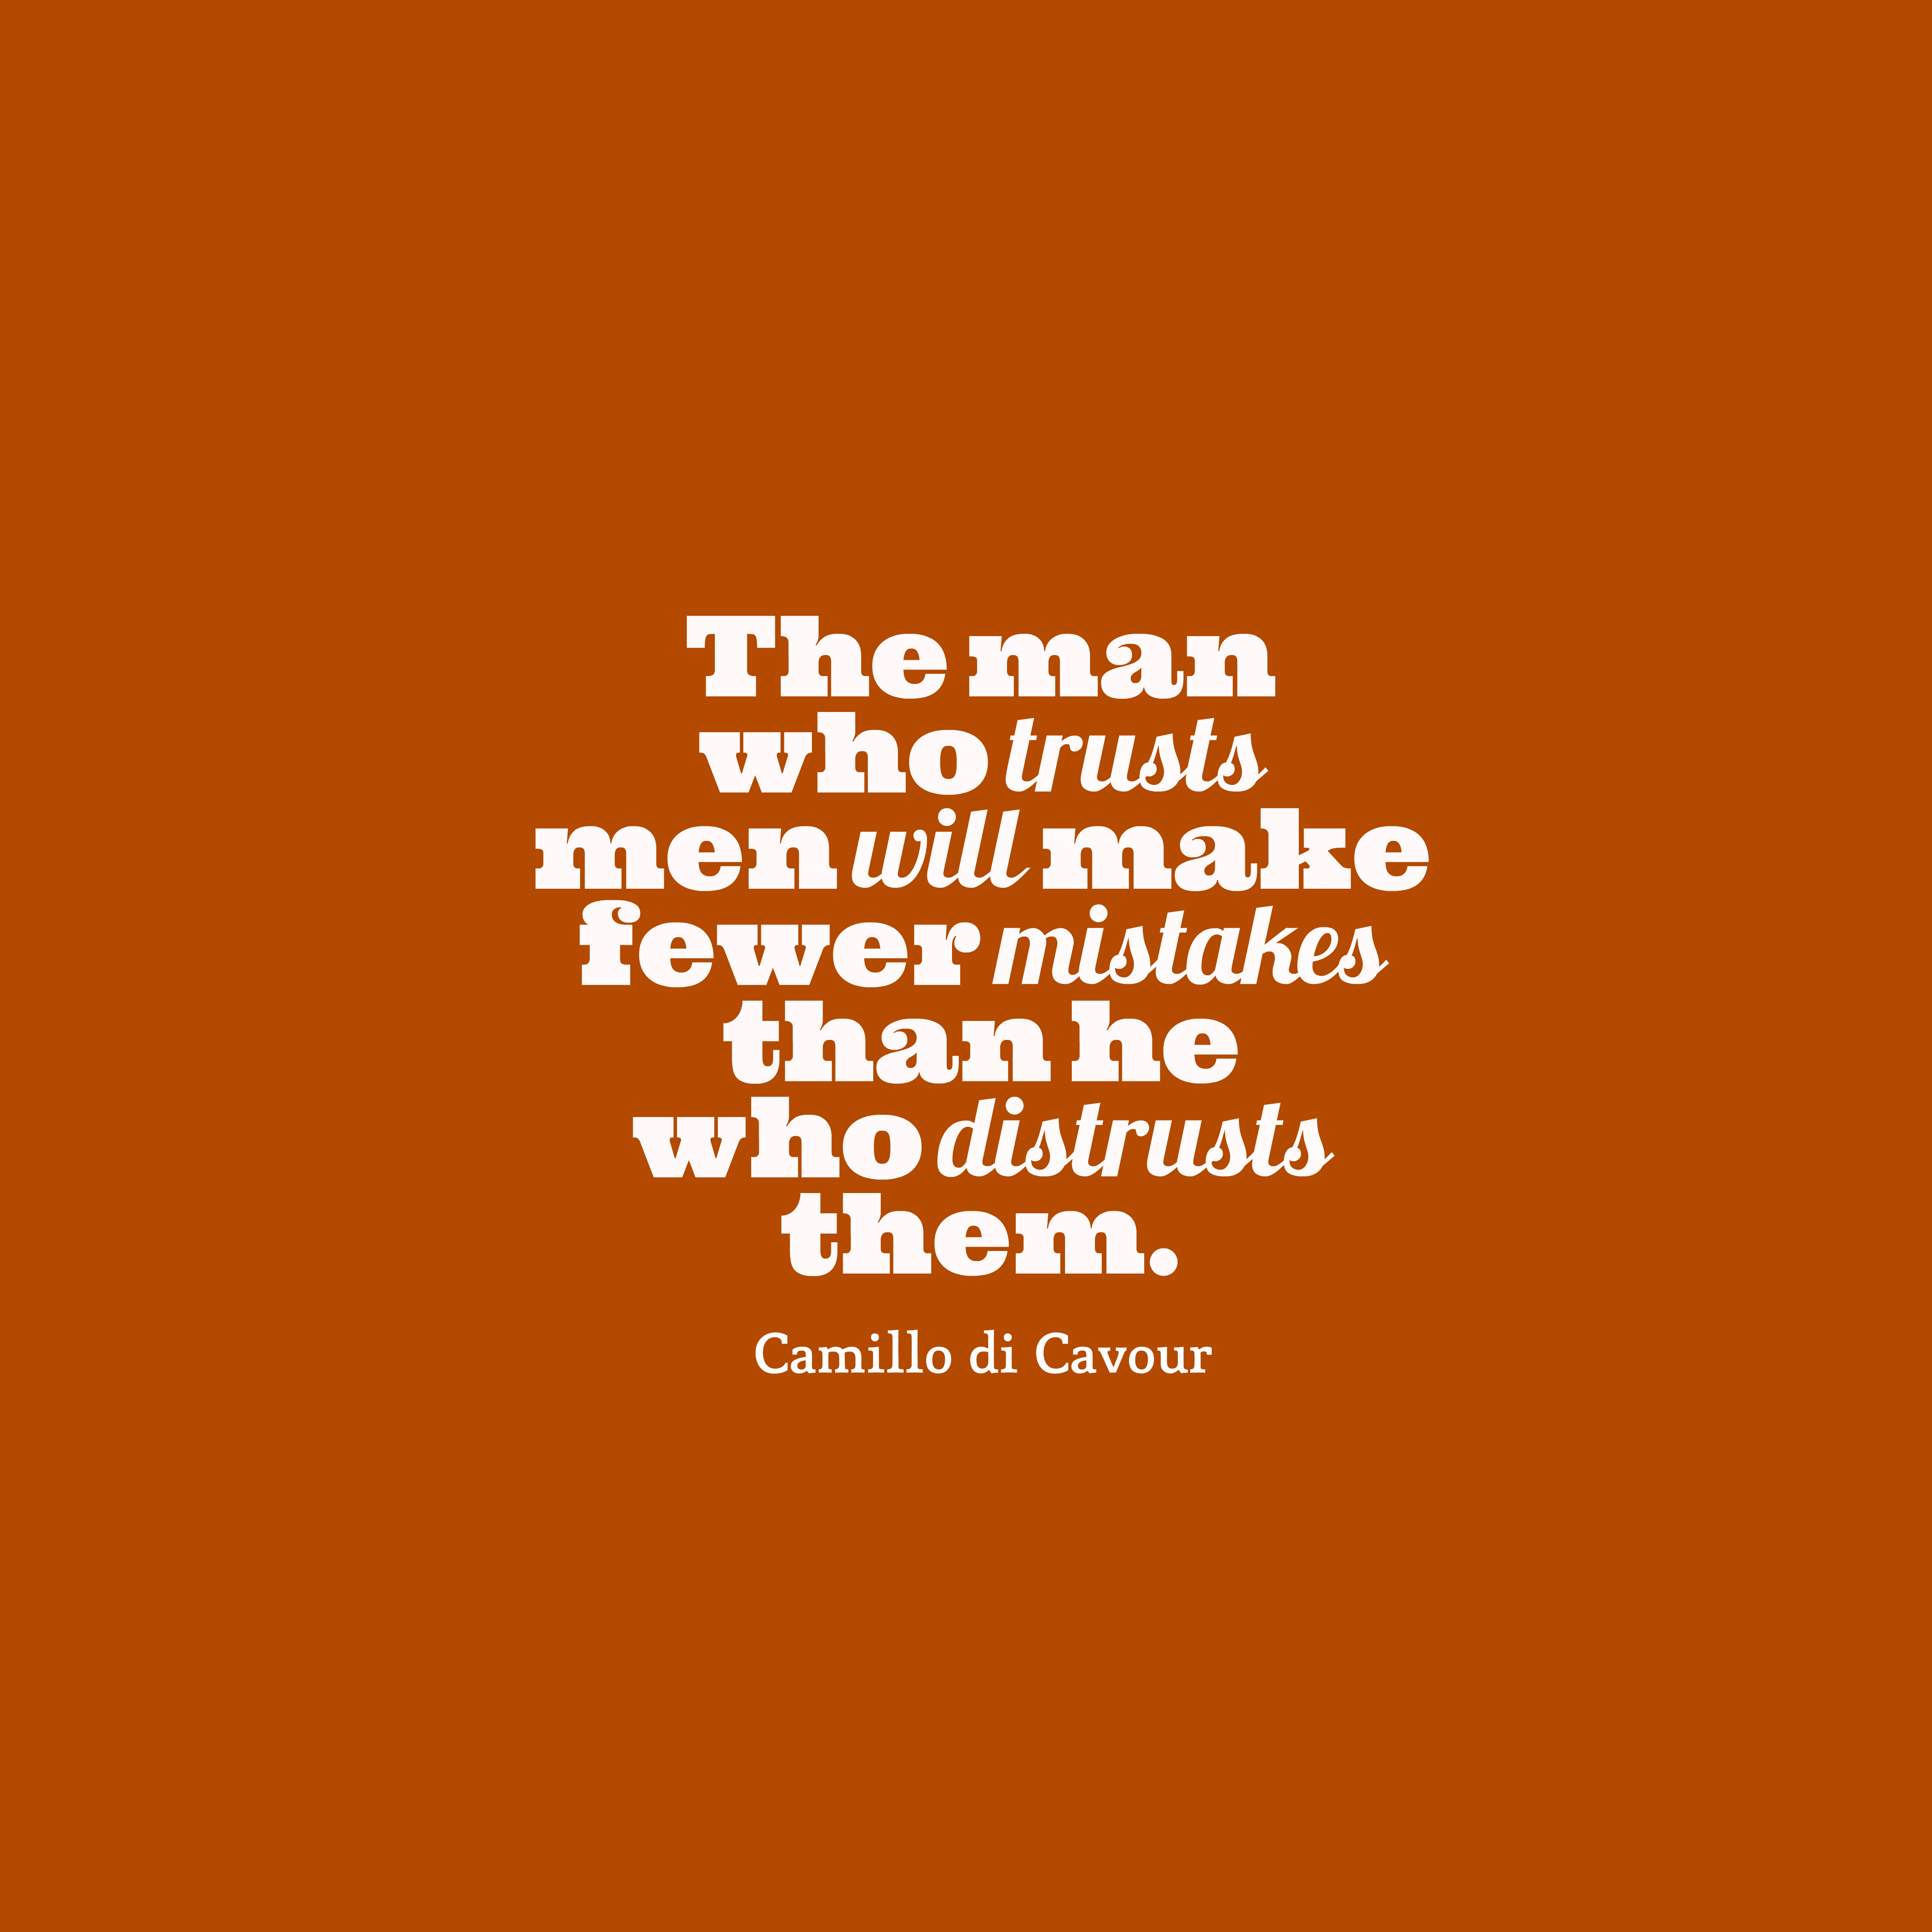 Quotes image of The man who trusts men will make fewer mistakes than he who distrusts them.